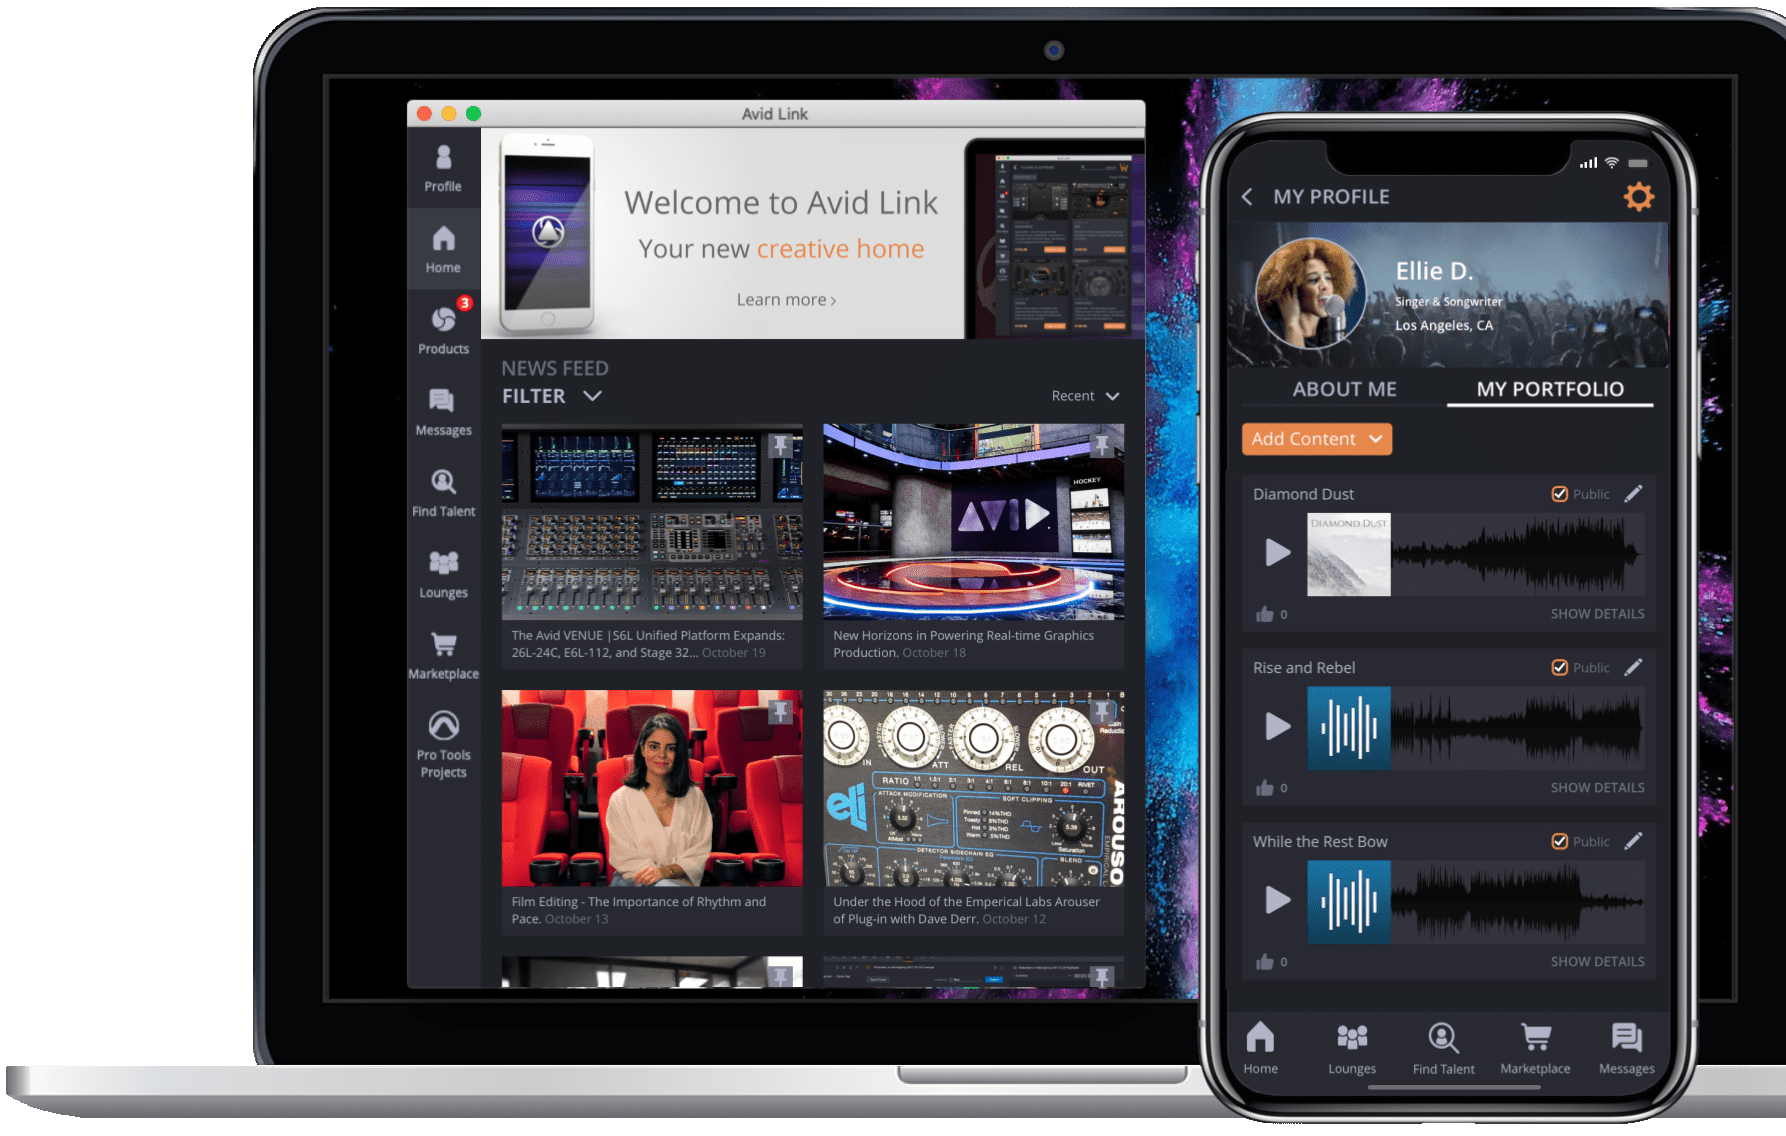 Avid Link creative community free app showing the homescreen on a laptop and a profile portfolio page on a smartphone